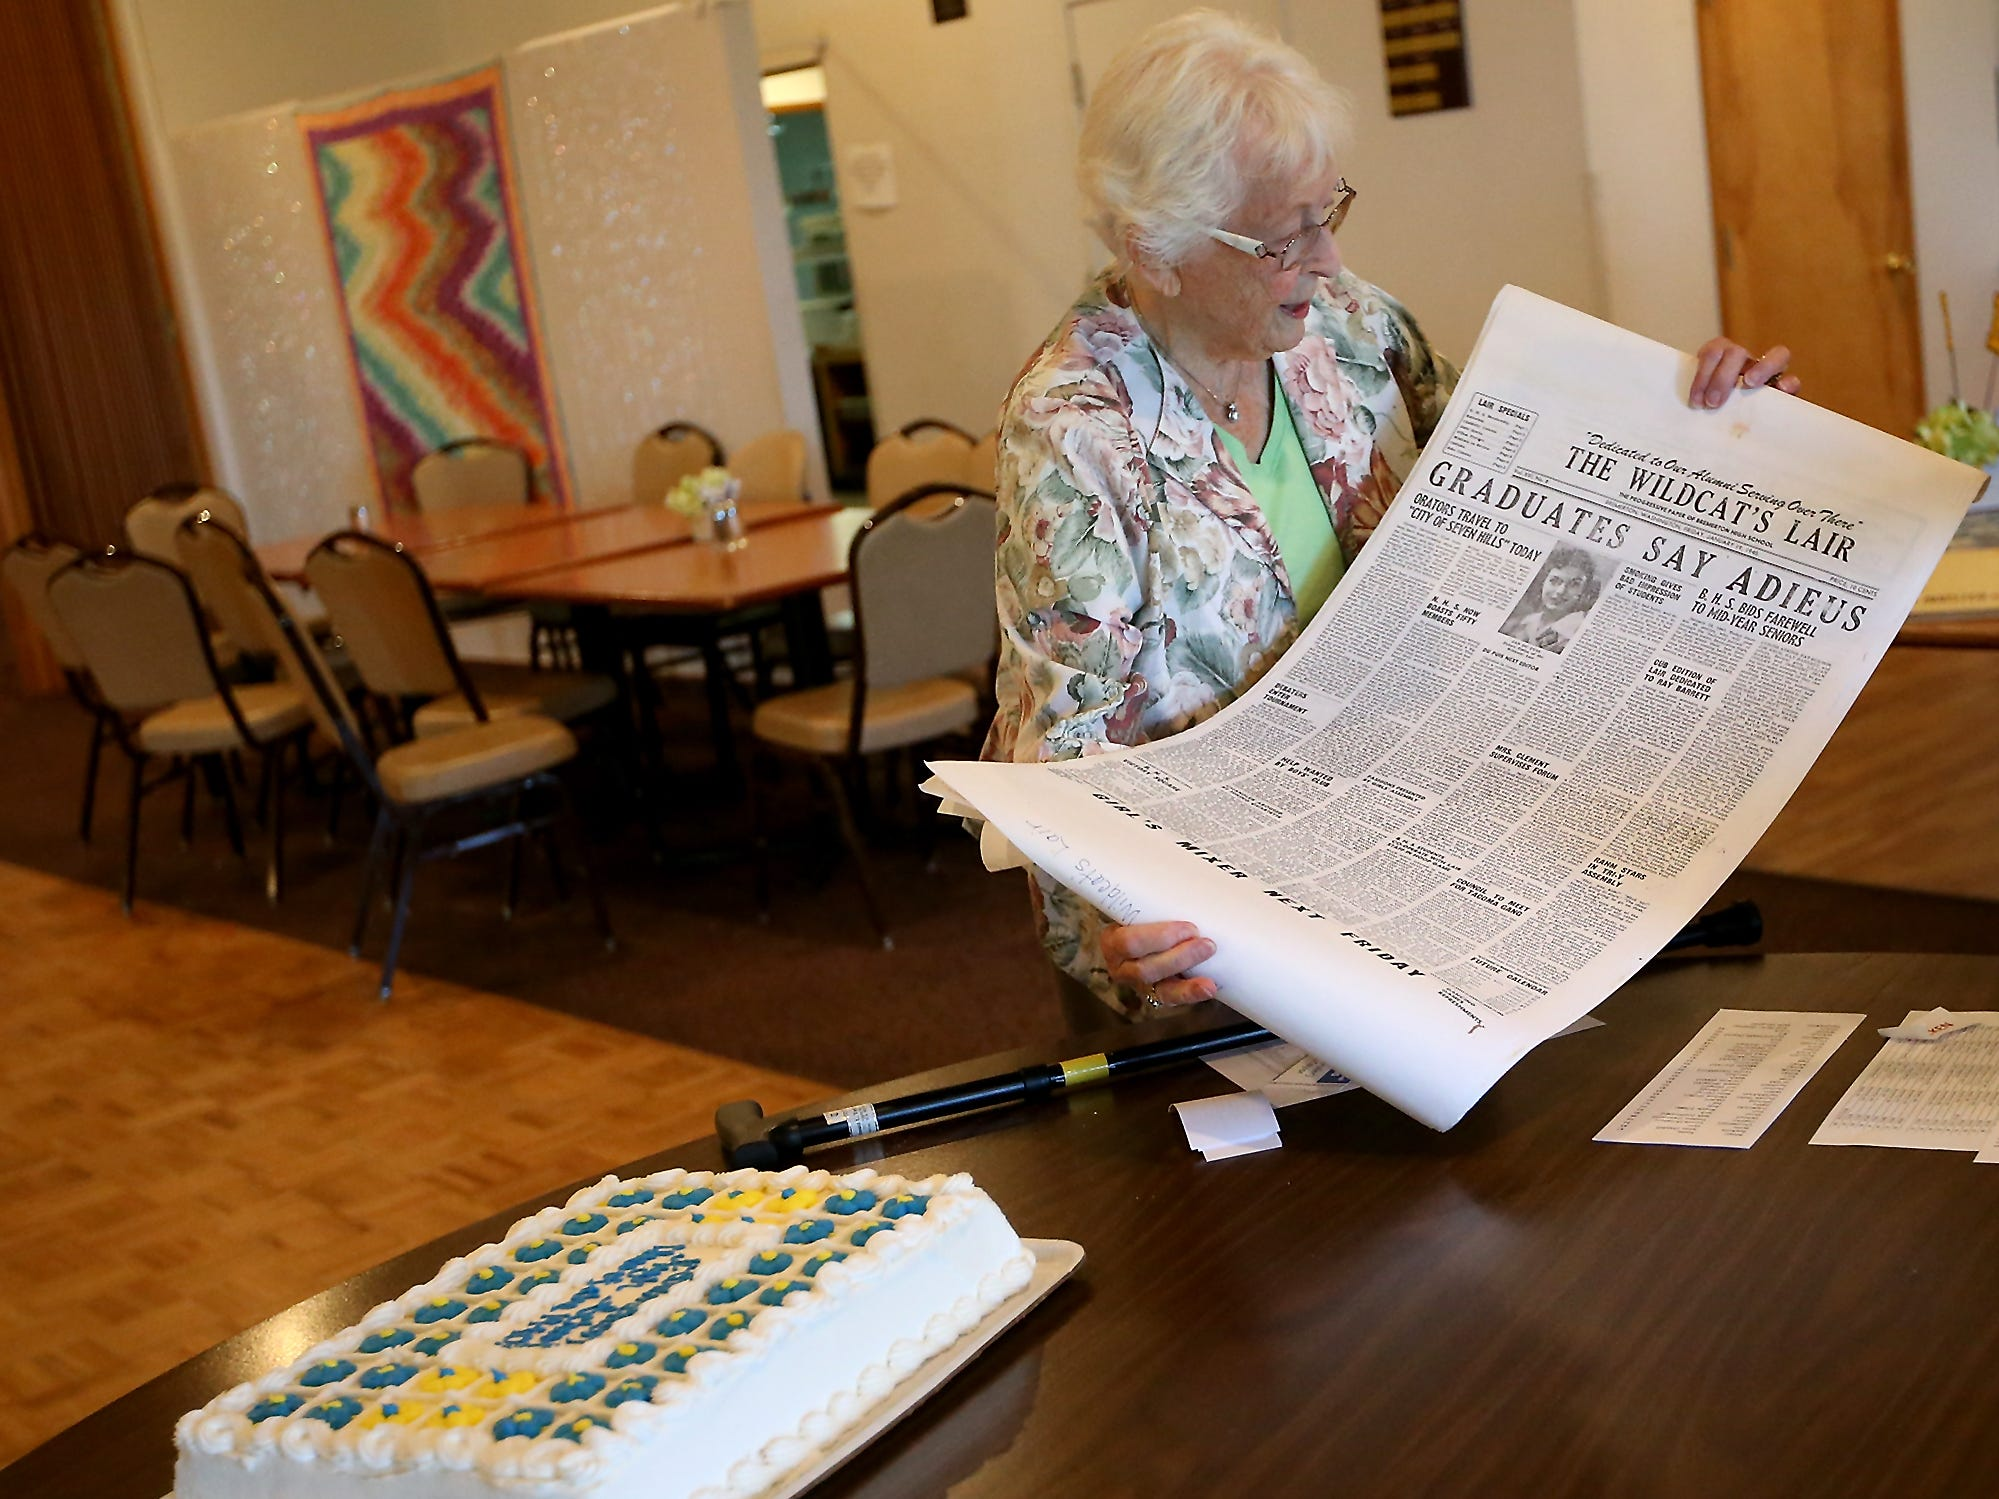 Thelma (Fuller) Gurske-Taylor, class of 1946, unrolls a copy of their school newspaper The Wildcat's Lair that she had made to display as Bremerton High School graduates from 1938 to 1948 take part in a reunion at the Elks Lodge in Bremerton on Tuesday, August 7, 2018.